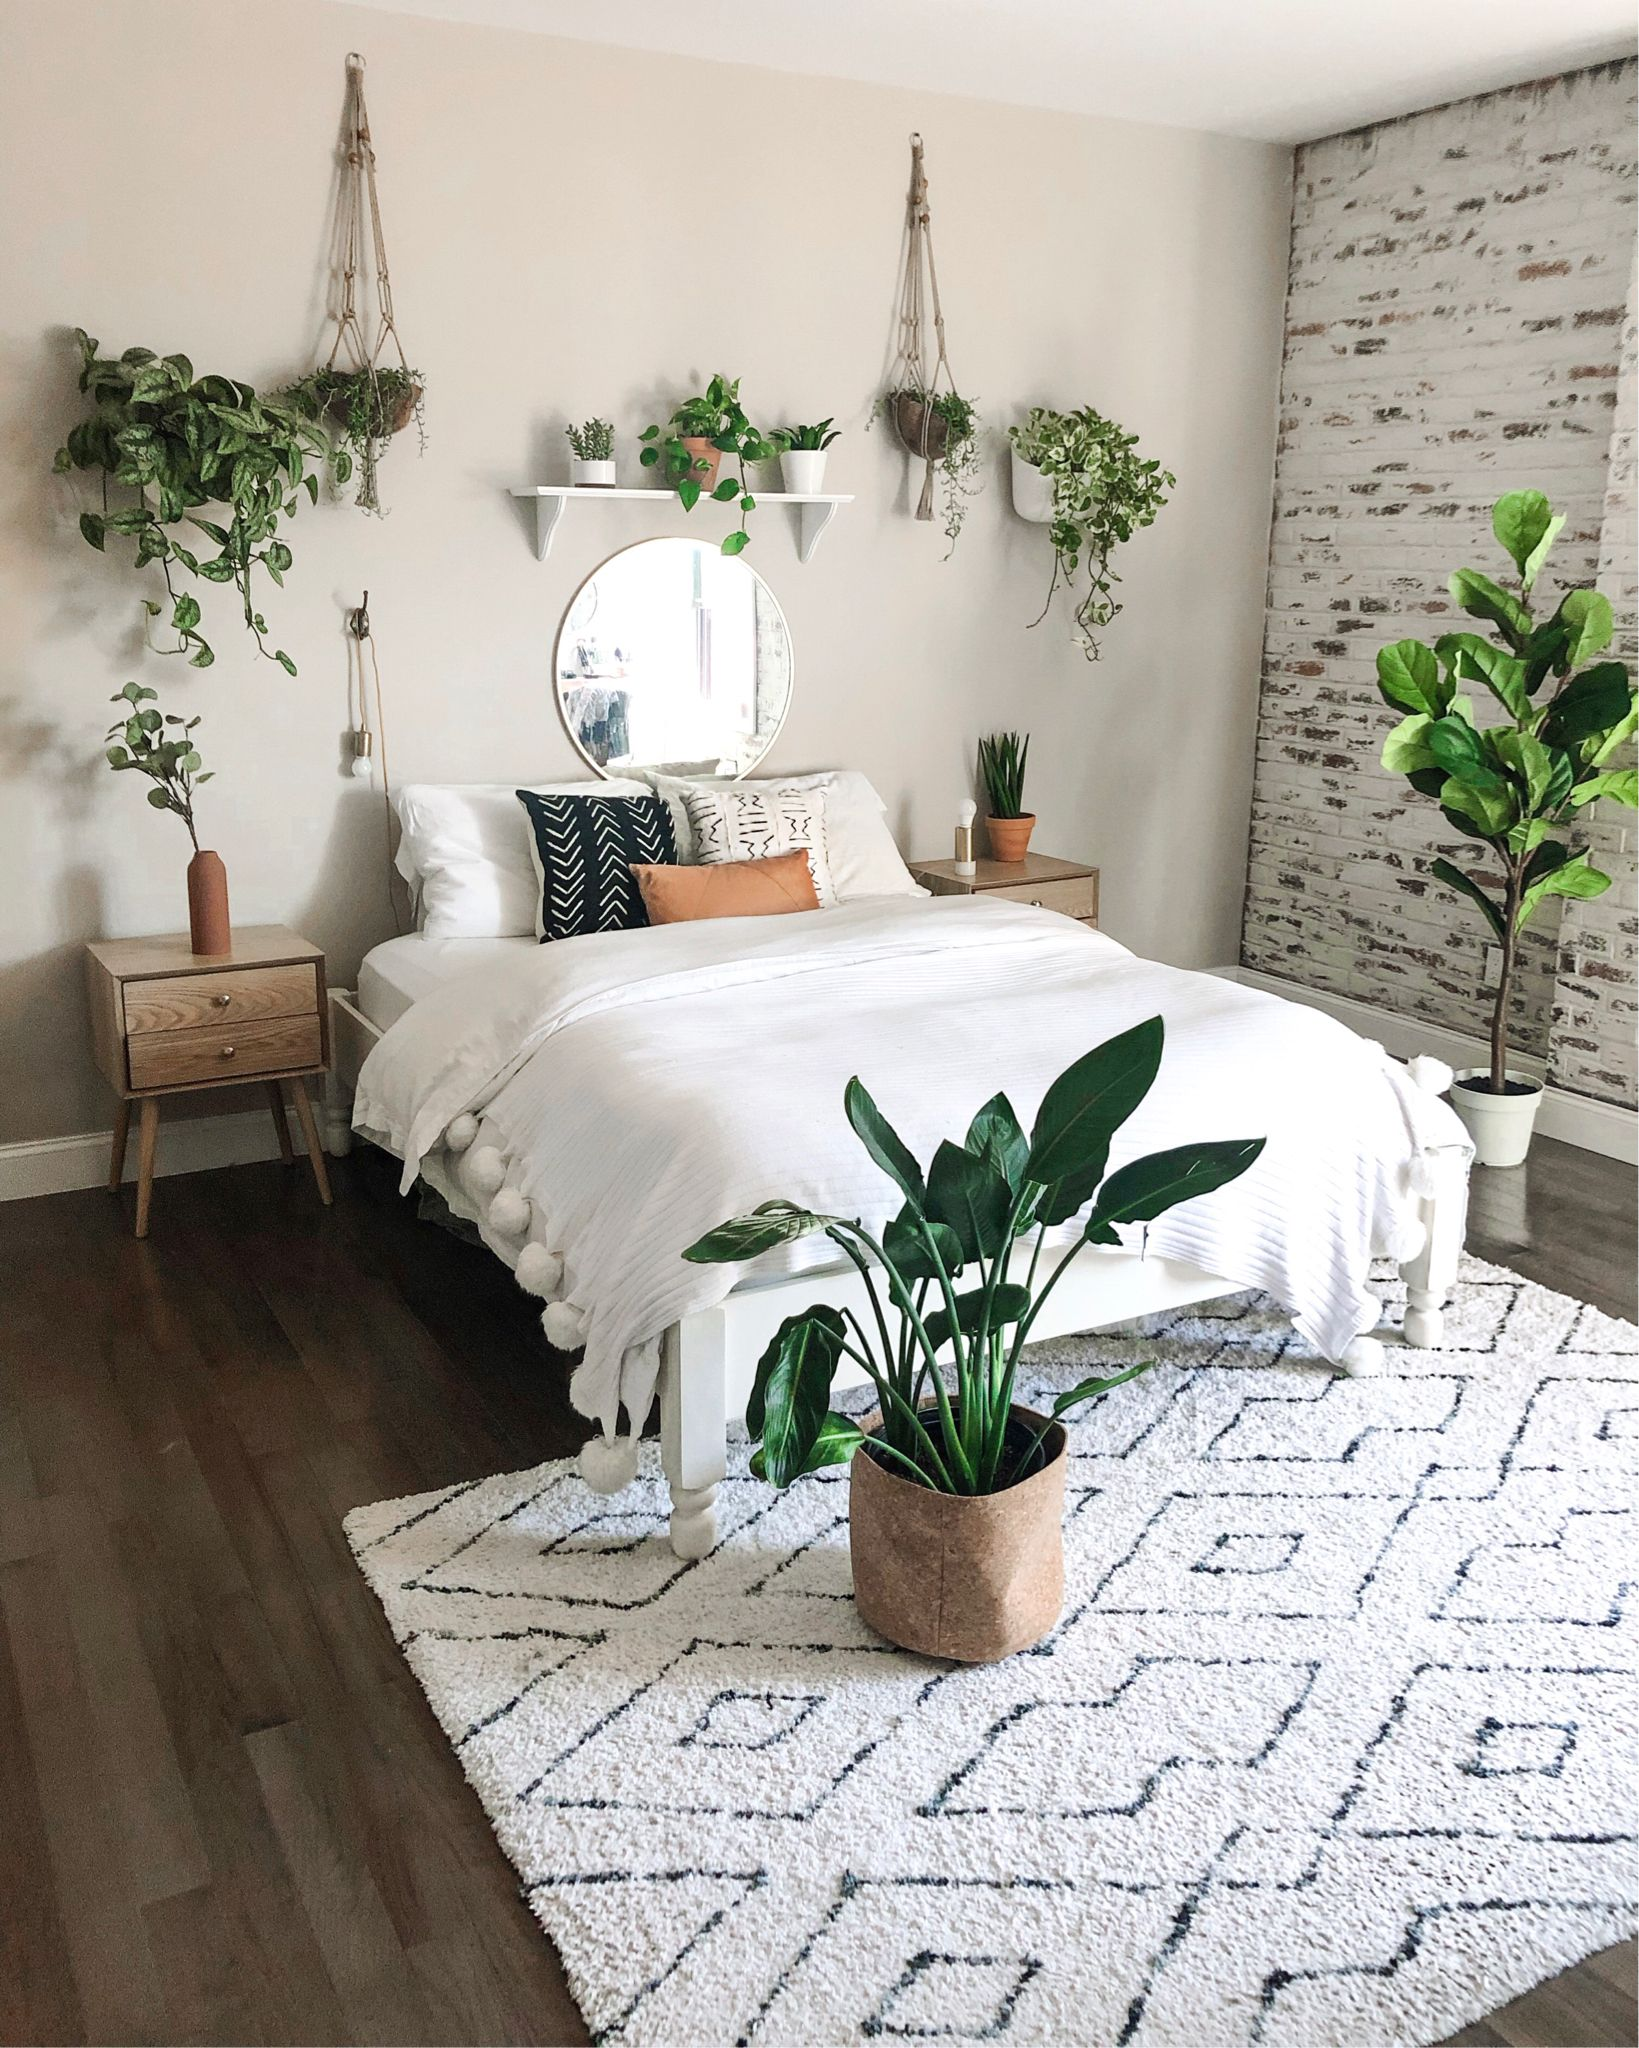 Plant Inspiration For Your Home